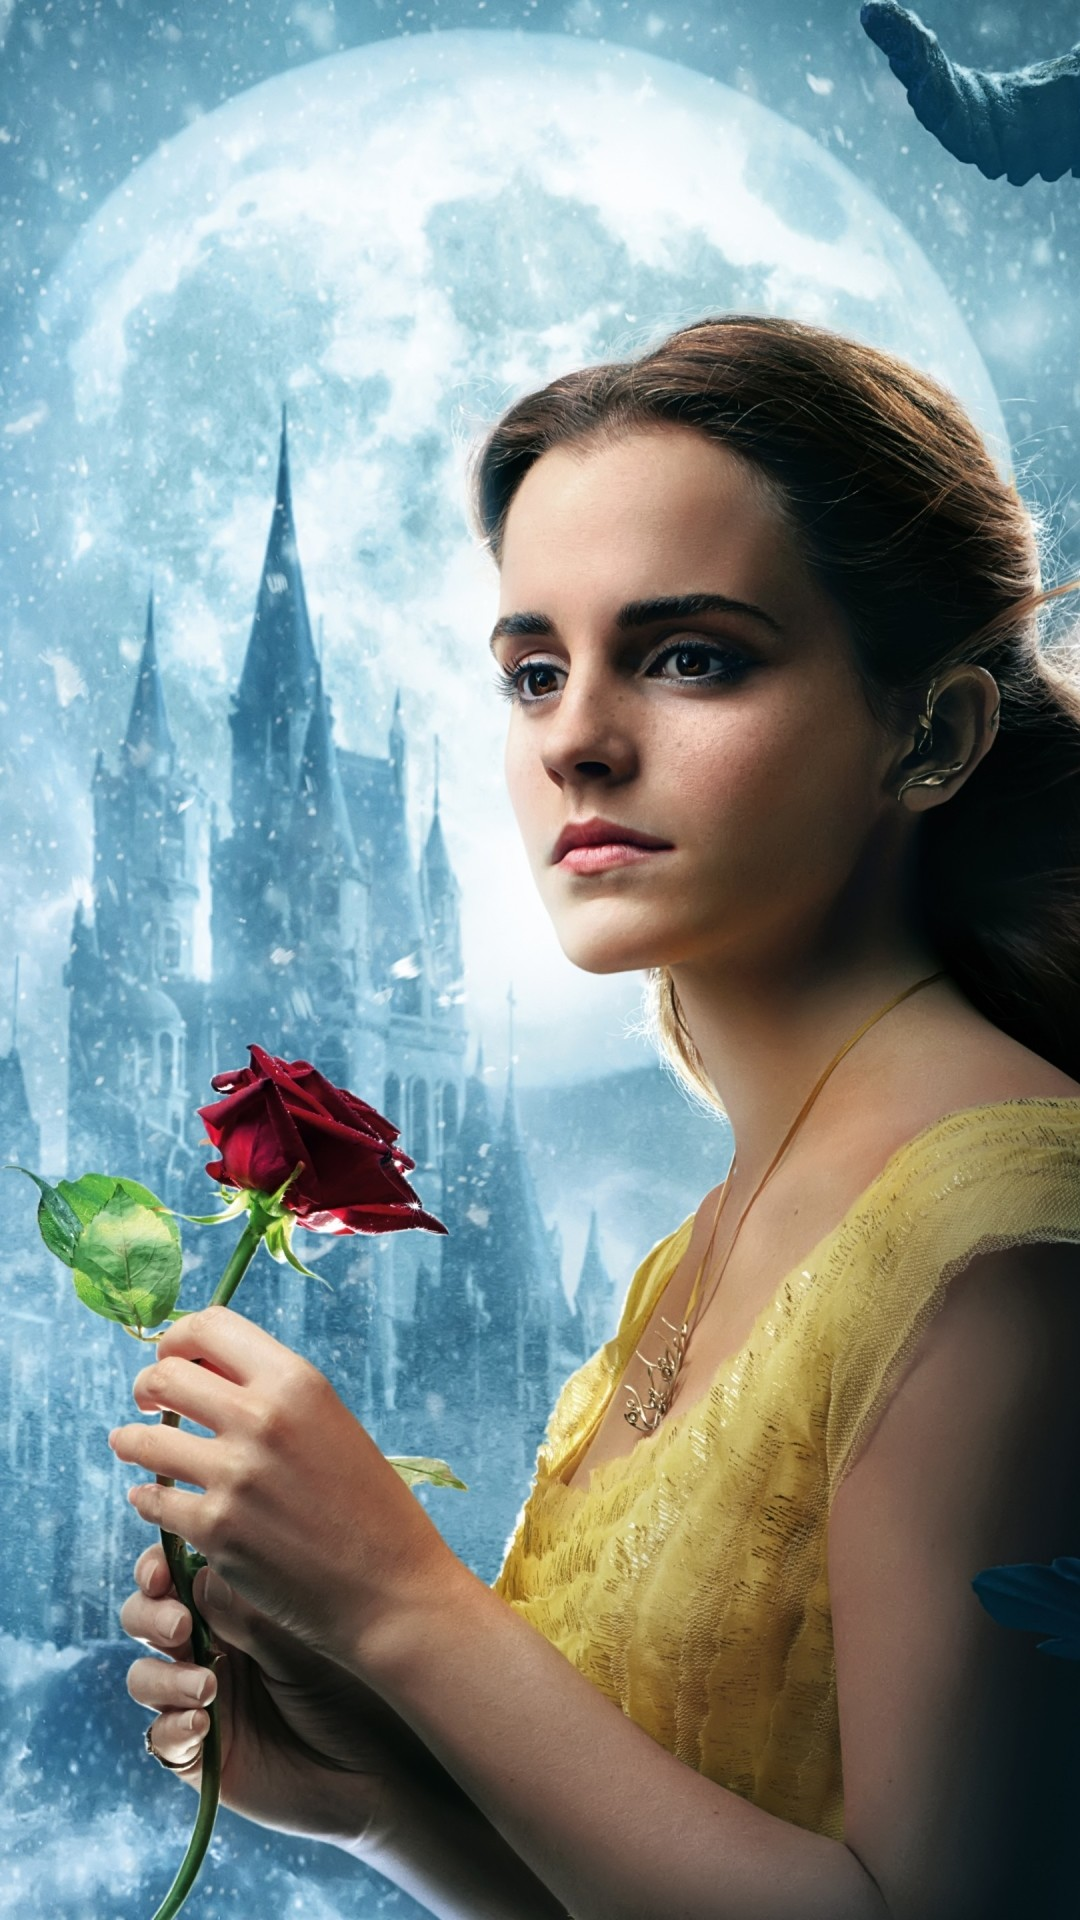 beauty and beast wallpapers free: Beauty And The Beast Wallpaper (79+ Images